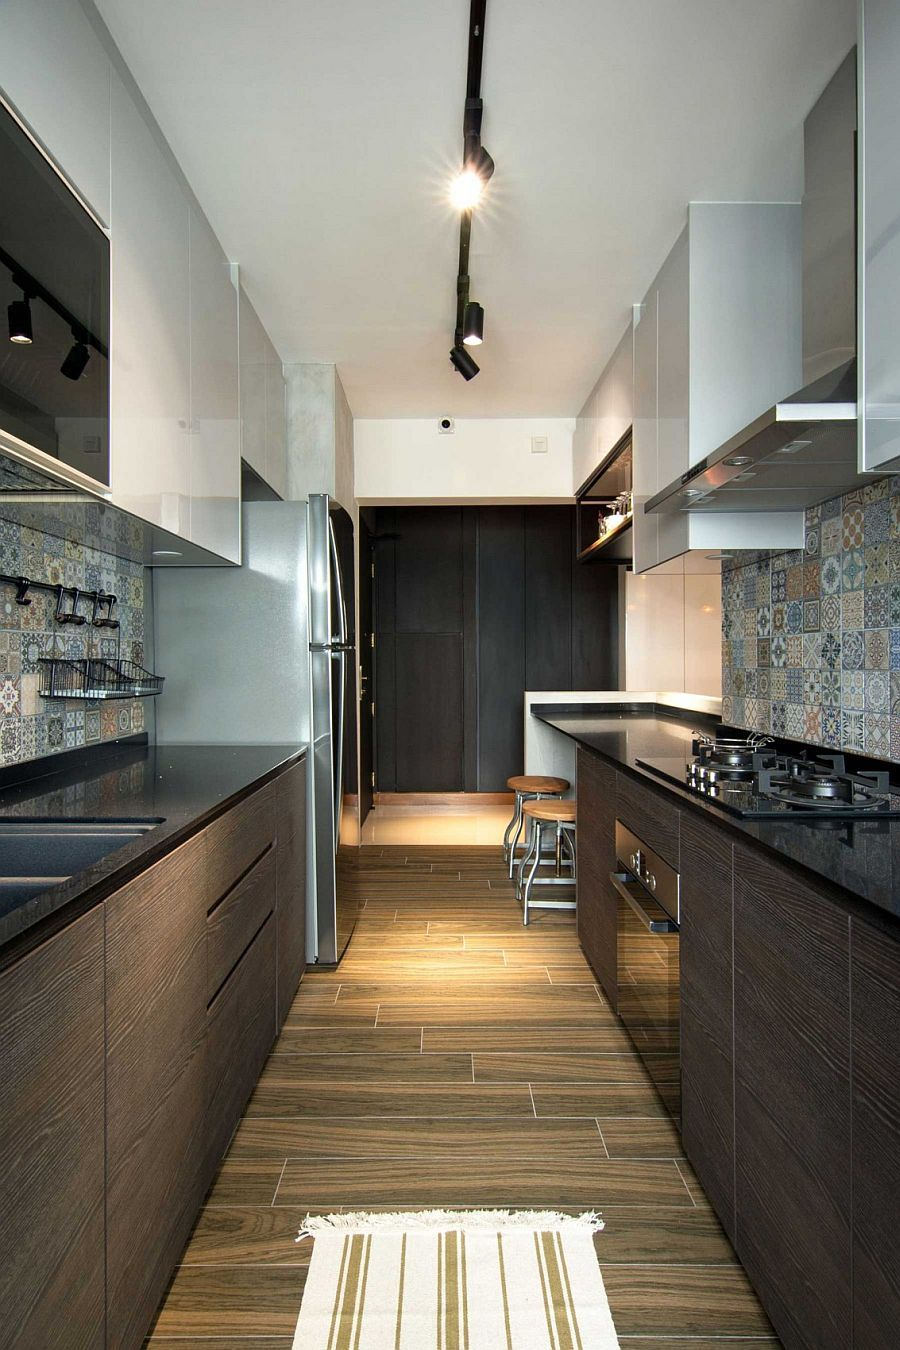 Small Contemporary Kitchen Design Inside Stylish Home In Singapore Decoist